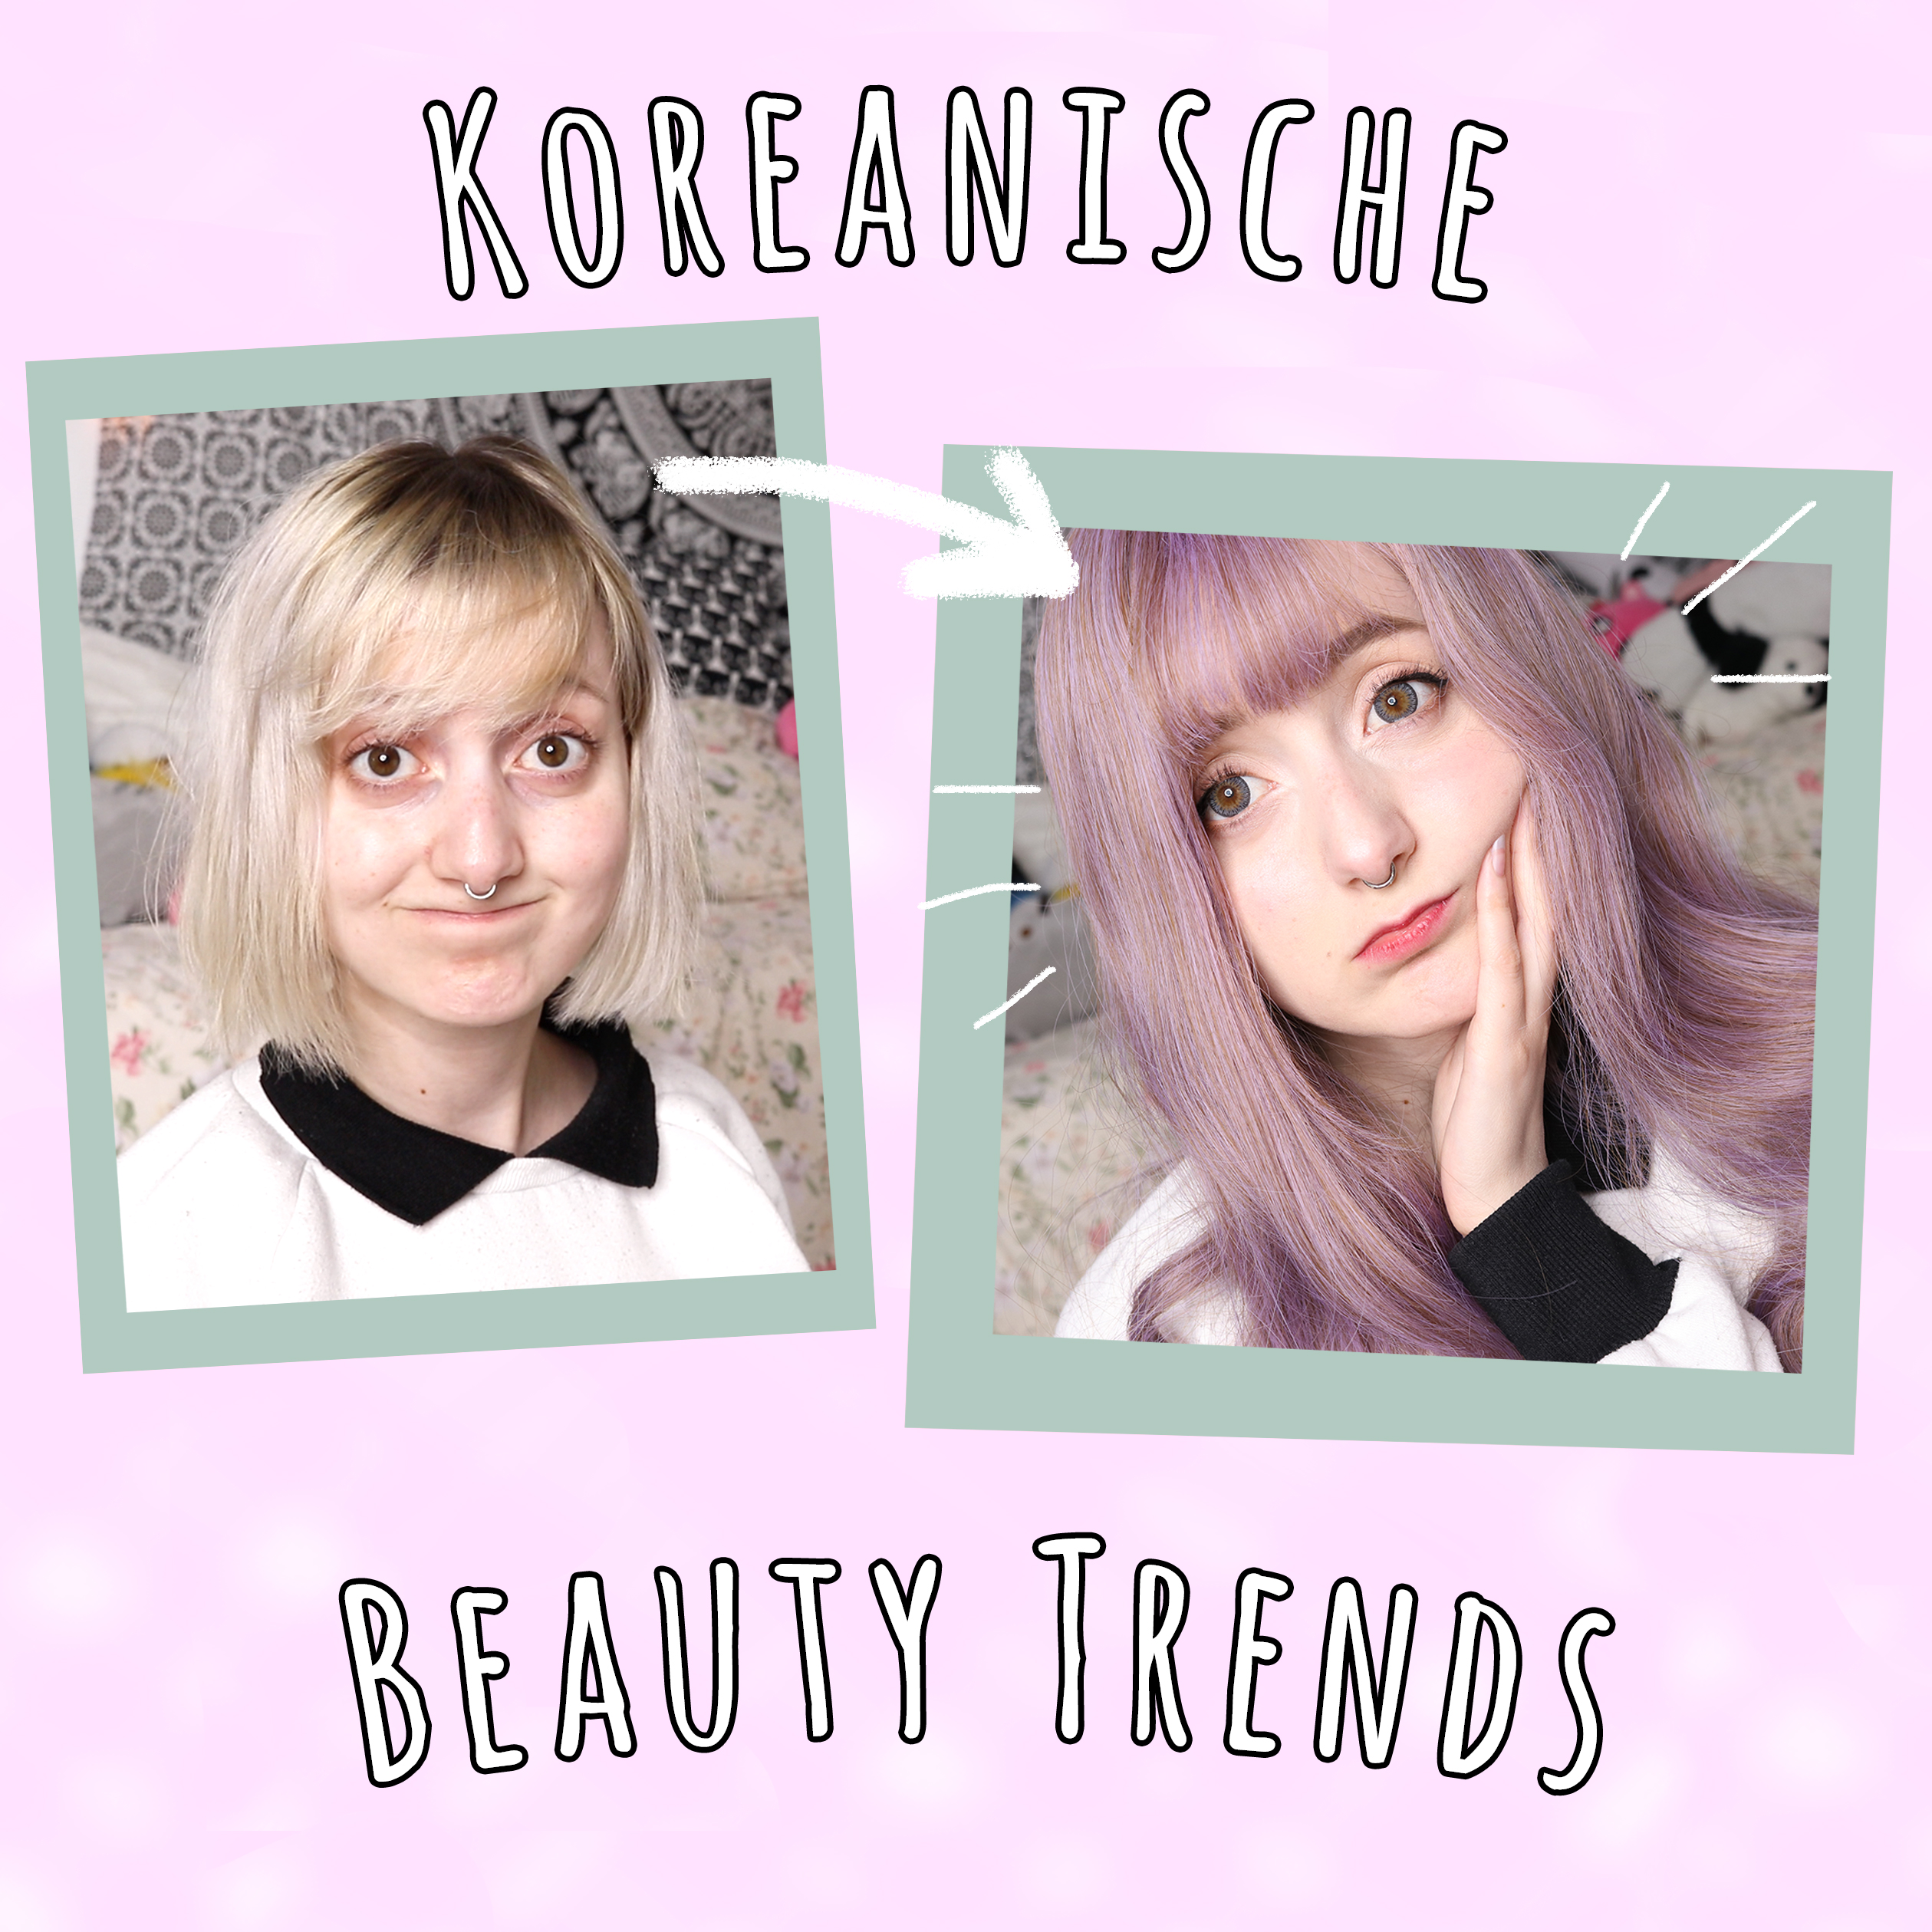 Ich probiere koreanische Make Up Trends aus